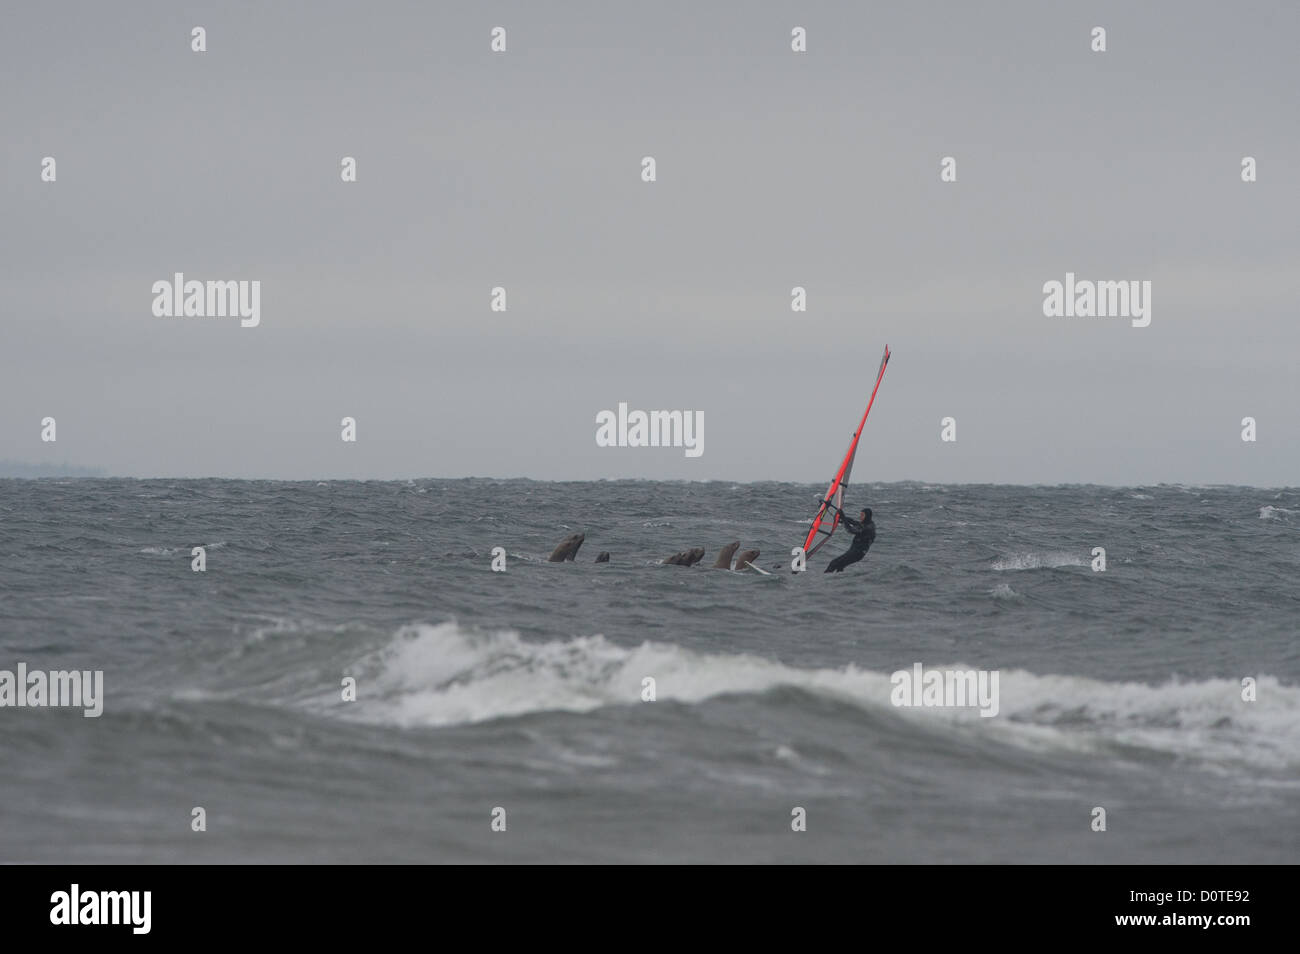 A lone windsurfer has a close encounter with a raft of Stellar Sea Lions. - Stock Image